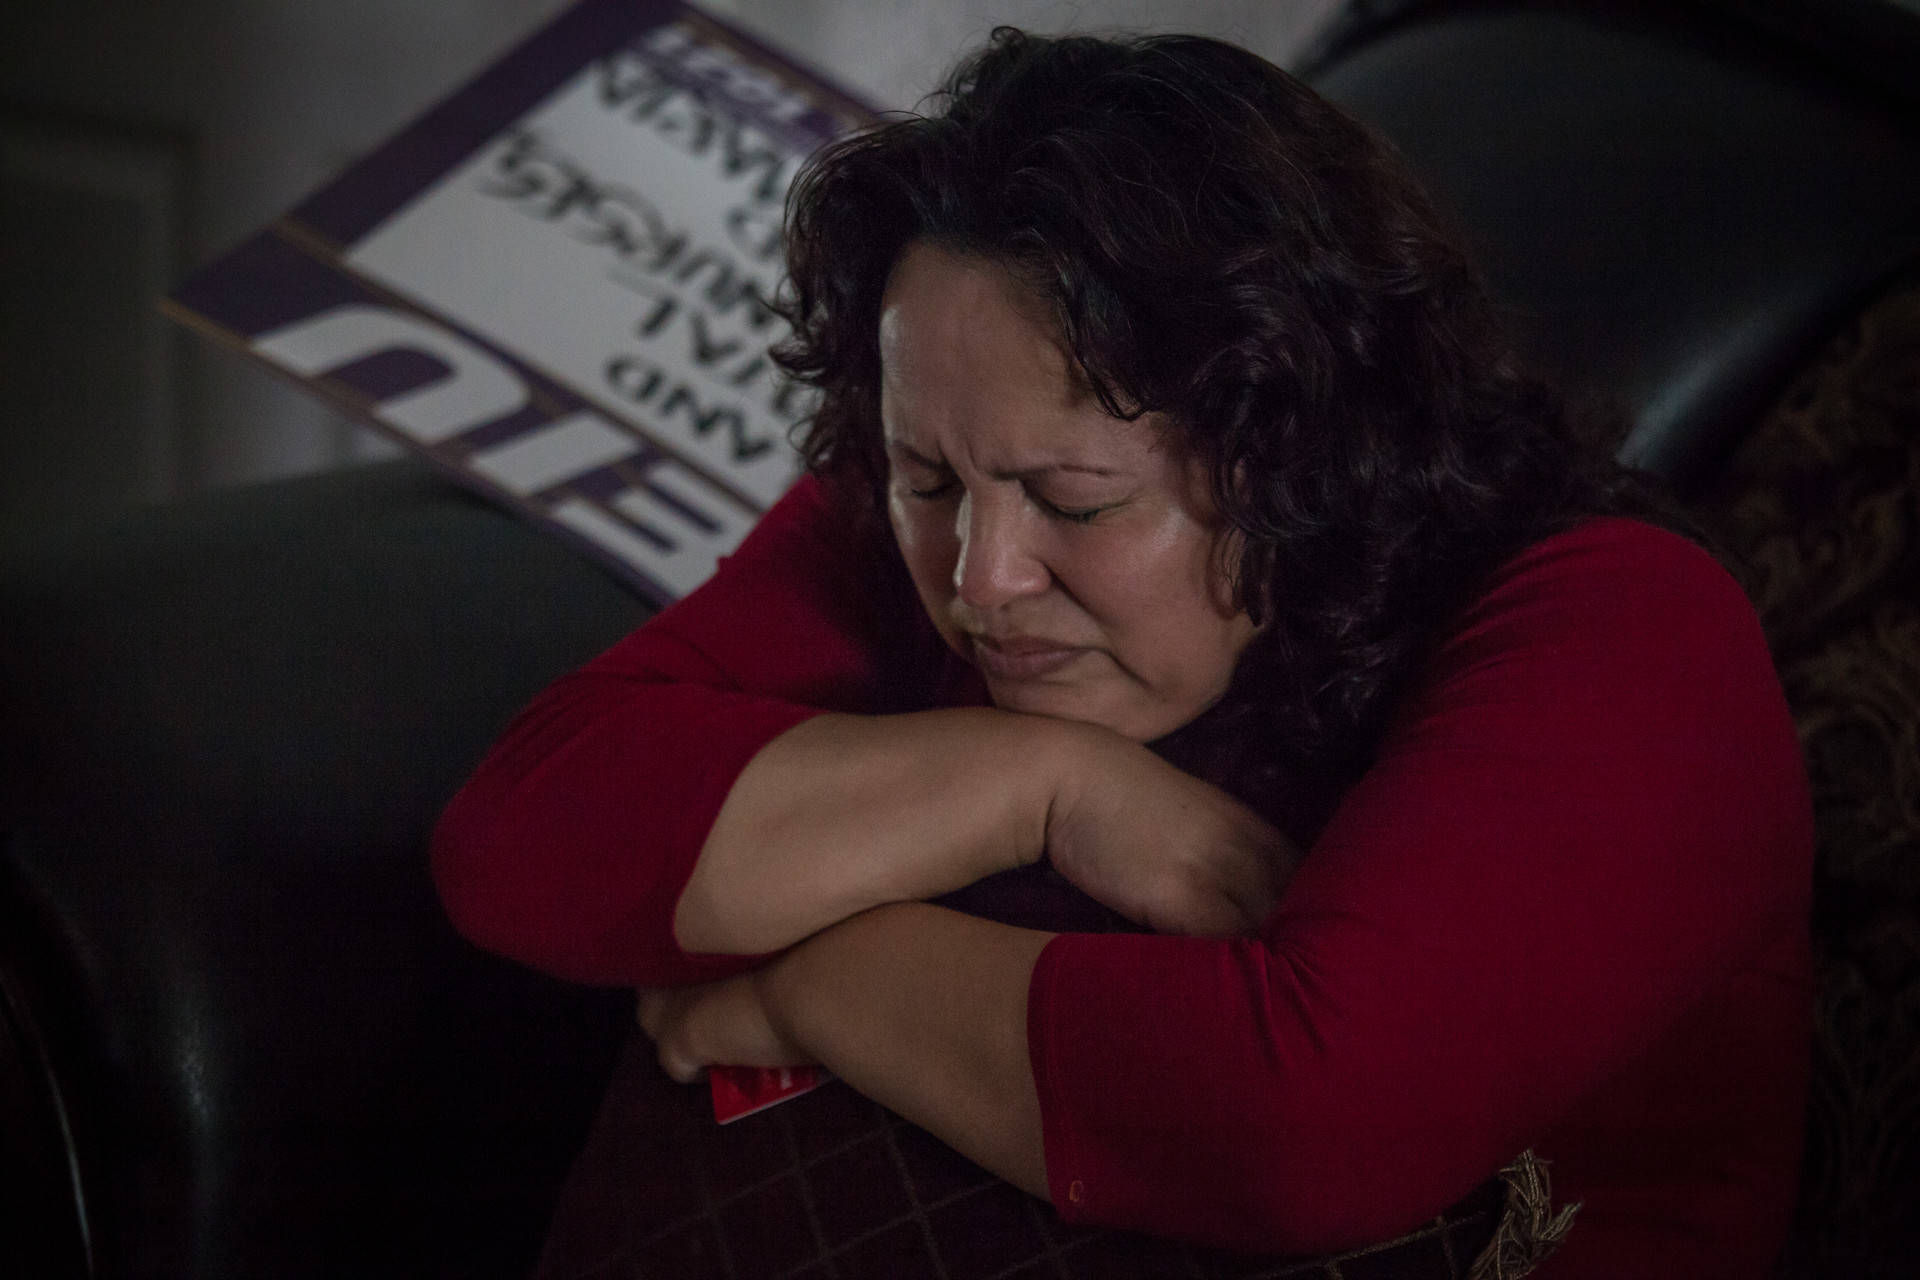 Maria Mendoza-Sanchez clutches a pillow in her Oakland home on Wednesday, Aug. 16, 2017, hours before she, her husband and their son left the U.S. for Mexico after federal immigration authorities denied their request for a reprieve.  Deborah Svoboda/KQED